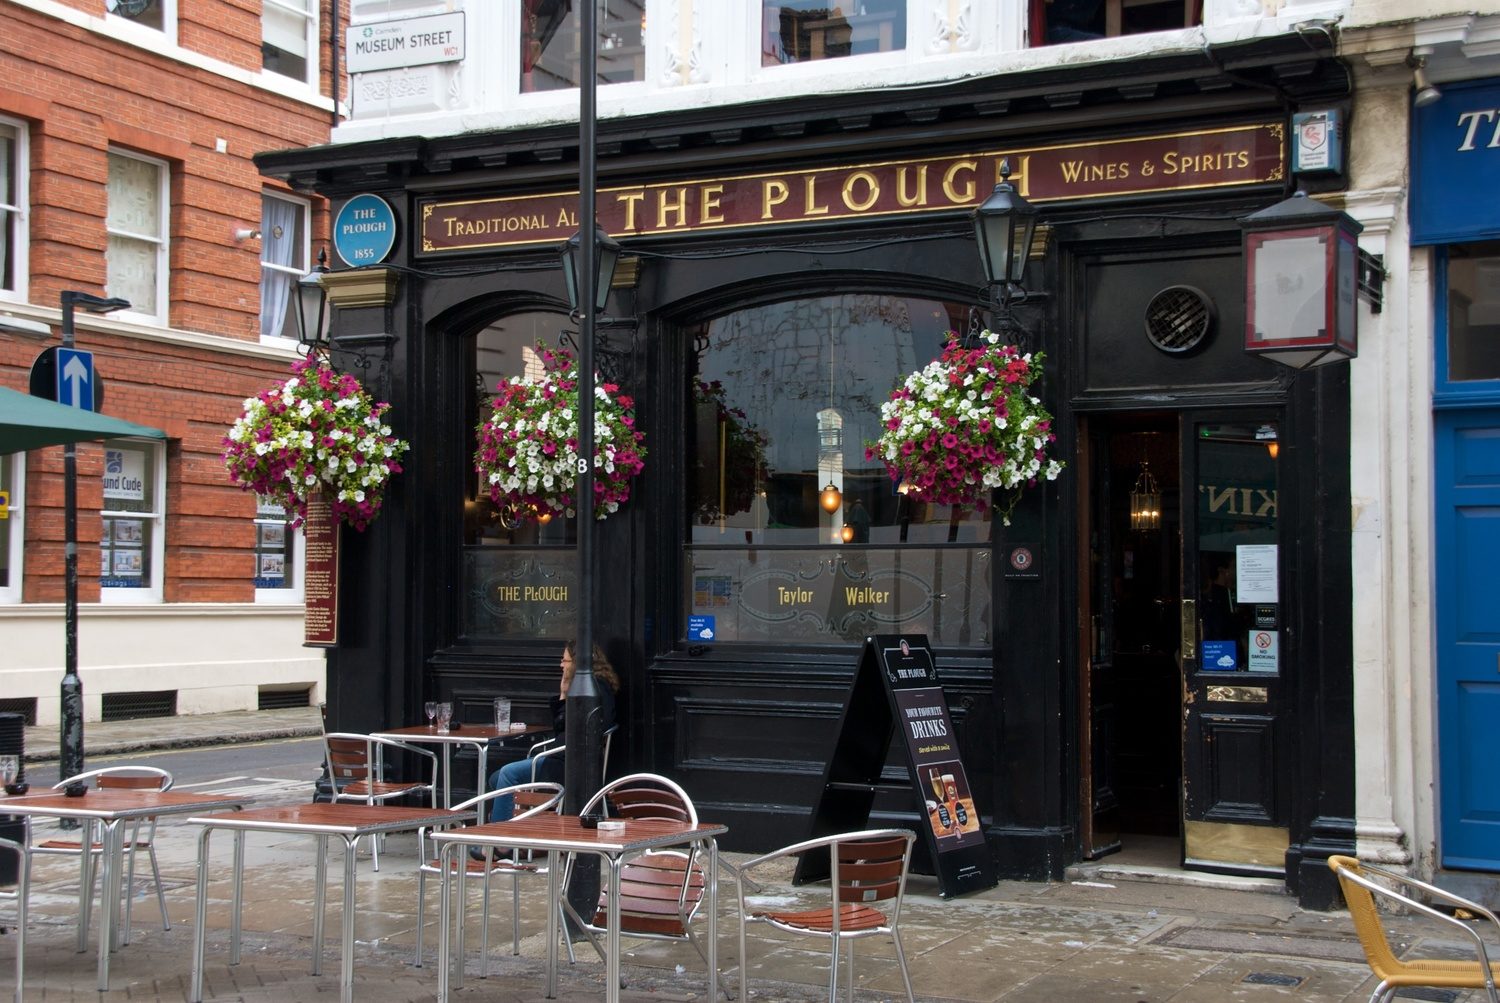 The Plough, one of many such pubs that you find all over London.